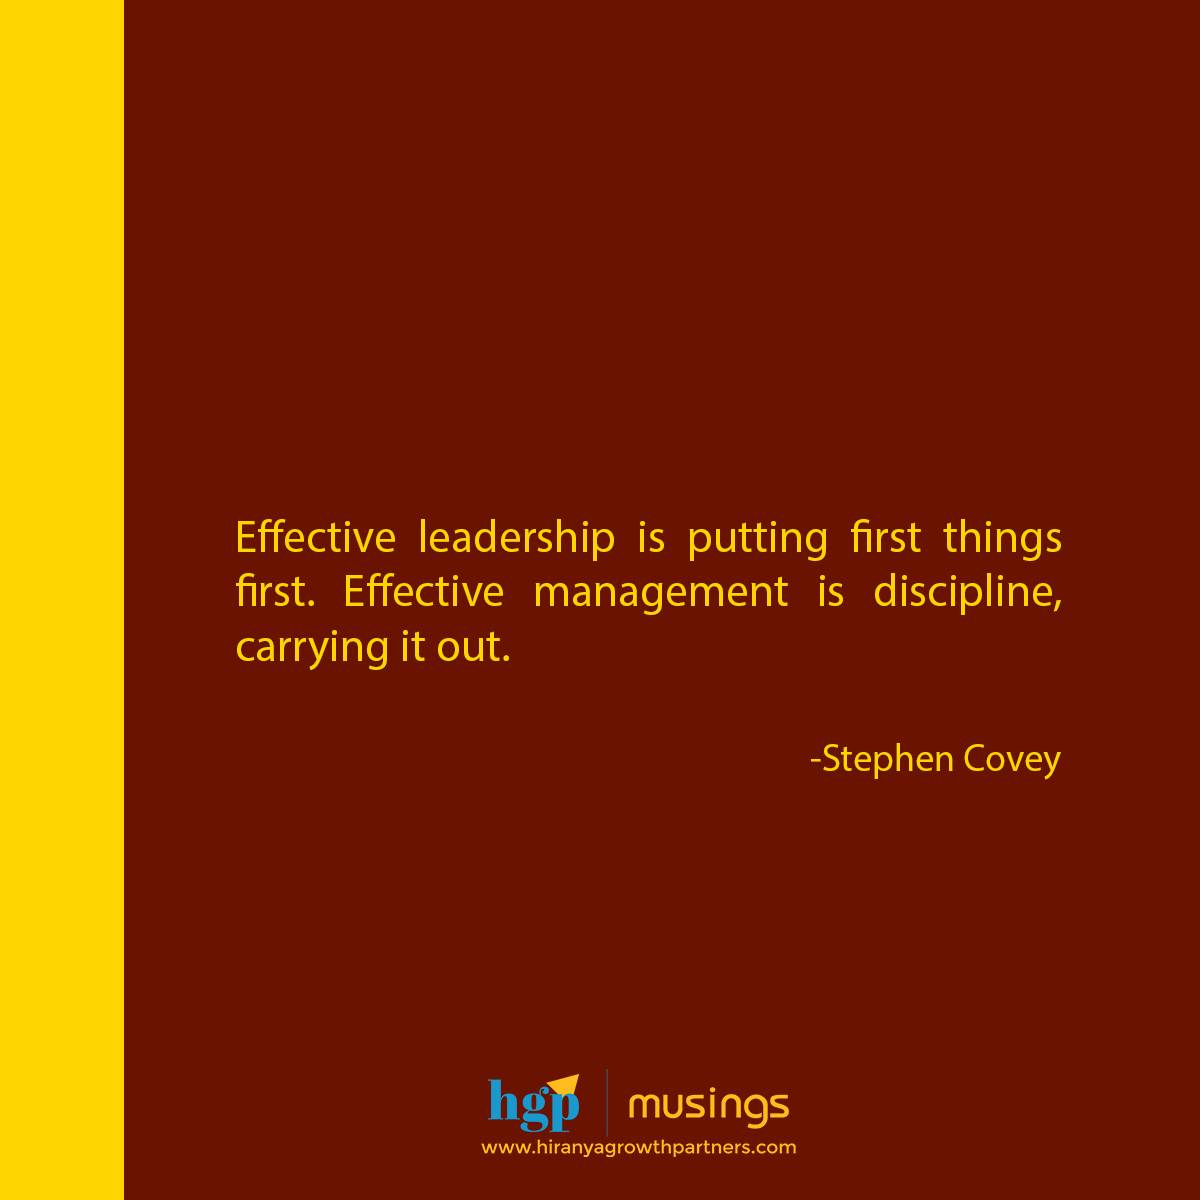 Hgpmusings Today Features A Quote Attributed To Stephen